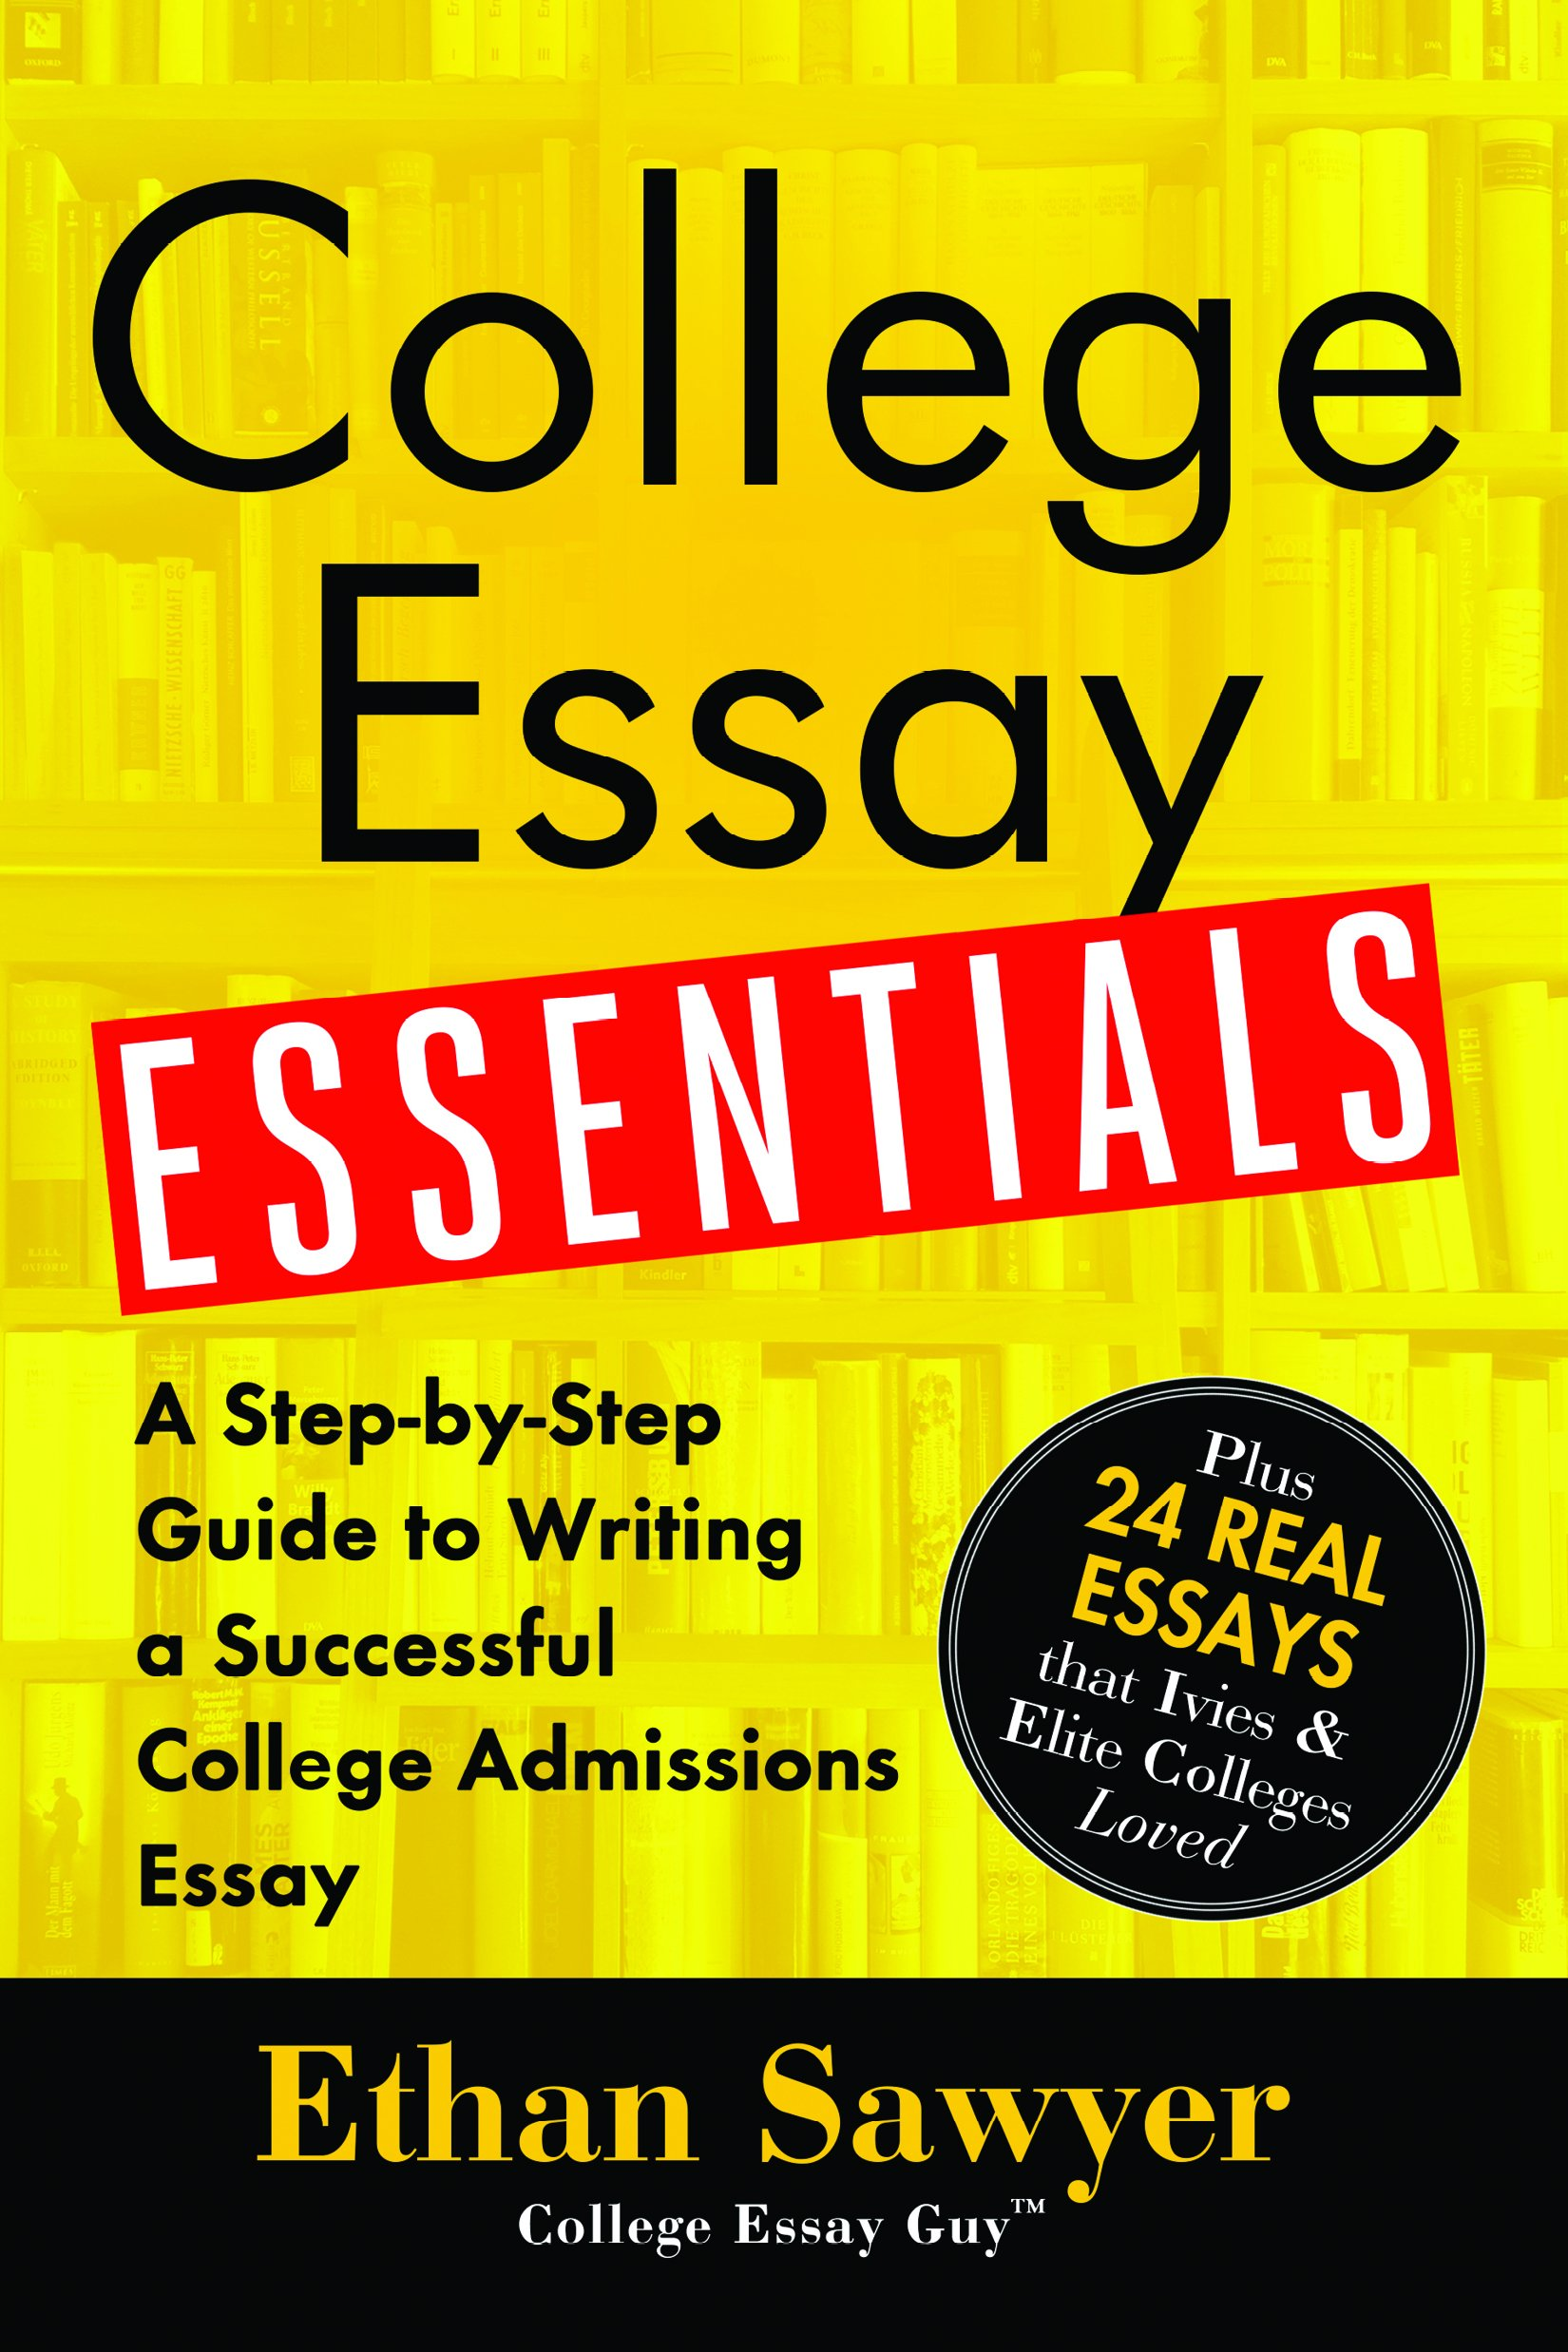 College essay essentials a step by step guide to writing a college essay essentials a step by step guide to writing a successful college admissions essay ethan sawyer 9781492635123 amazon books fandeluxe